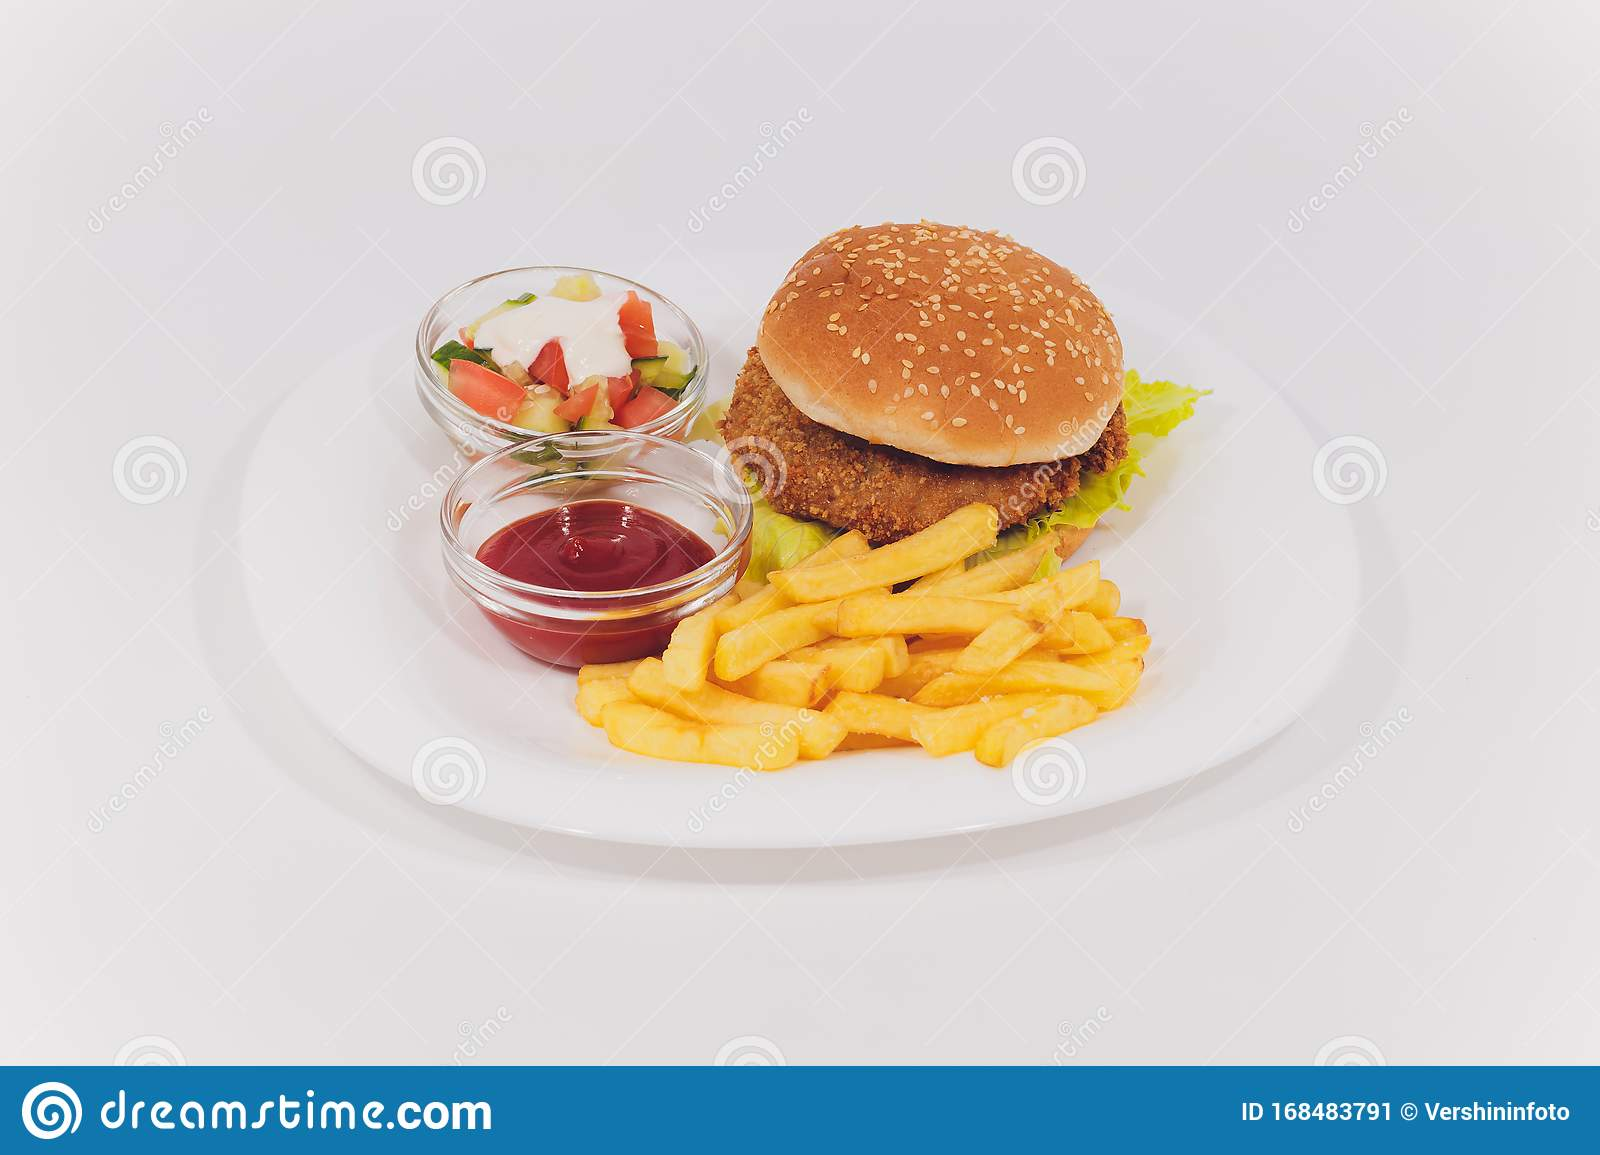 Mini Burger Platter With Fries Salad Isolated On White Background Stock Image Image Of Burger Calories 168483791